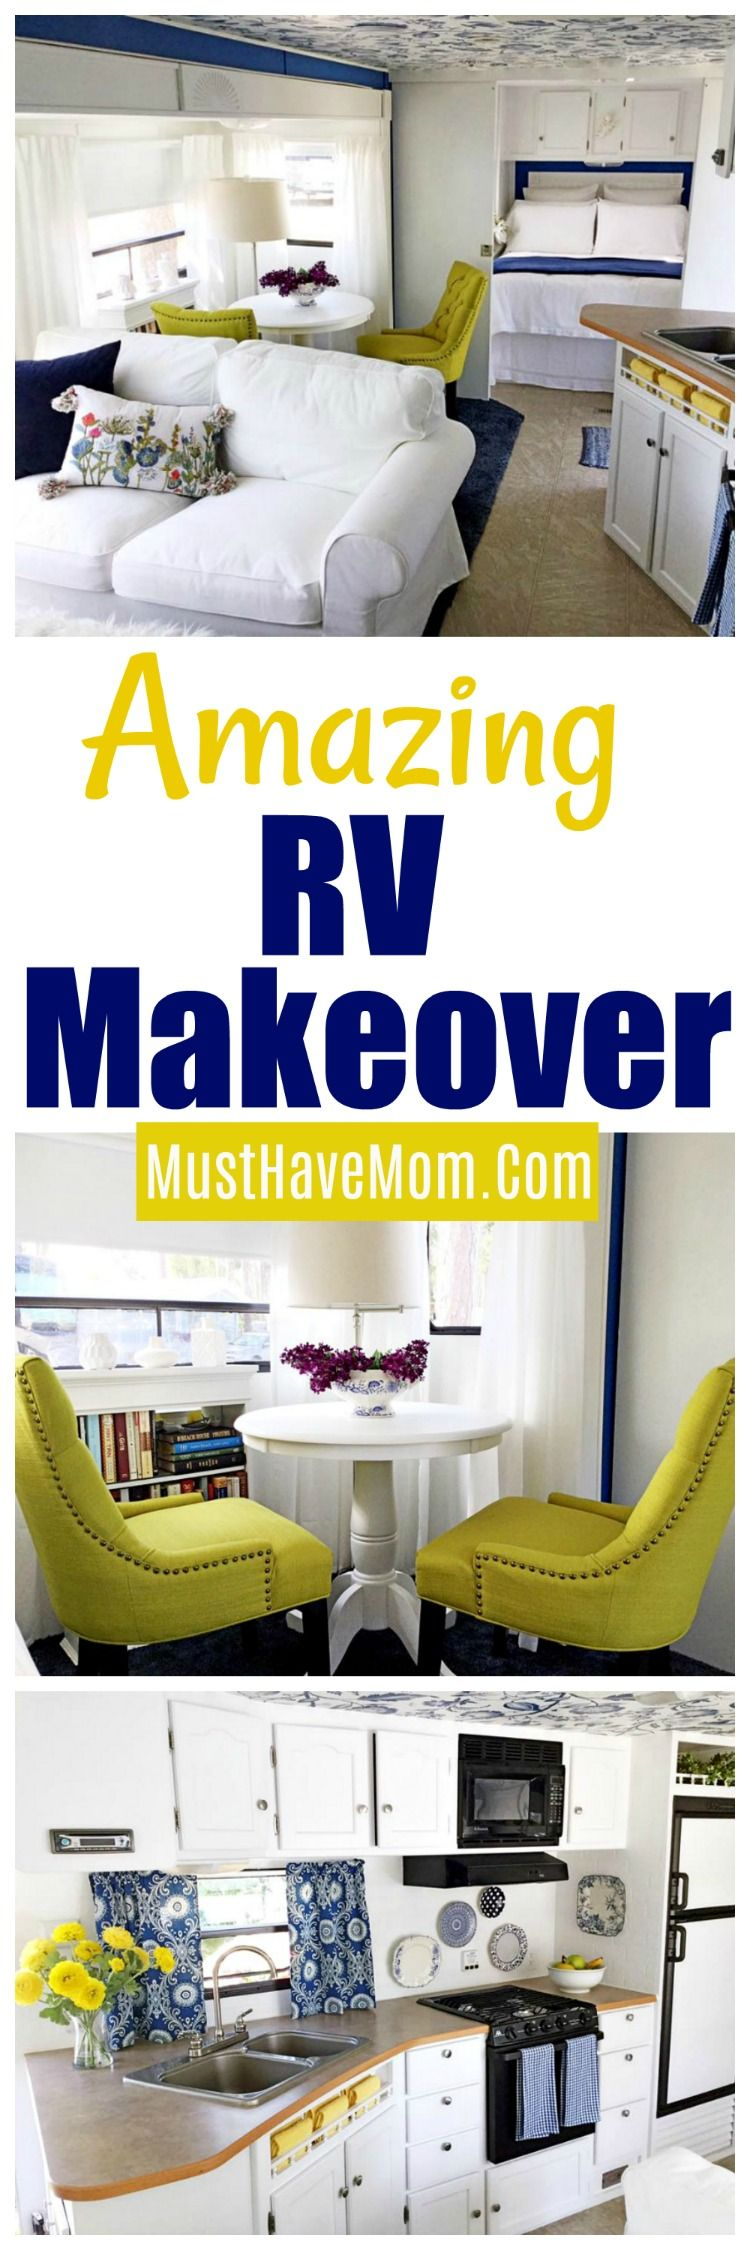 RV Makeover With Shocking Before & After Photos! | Pinterest ...